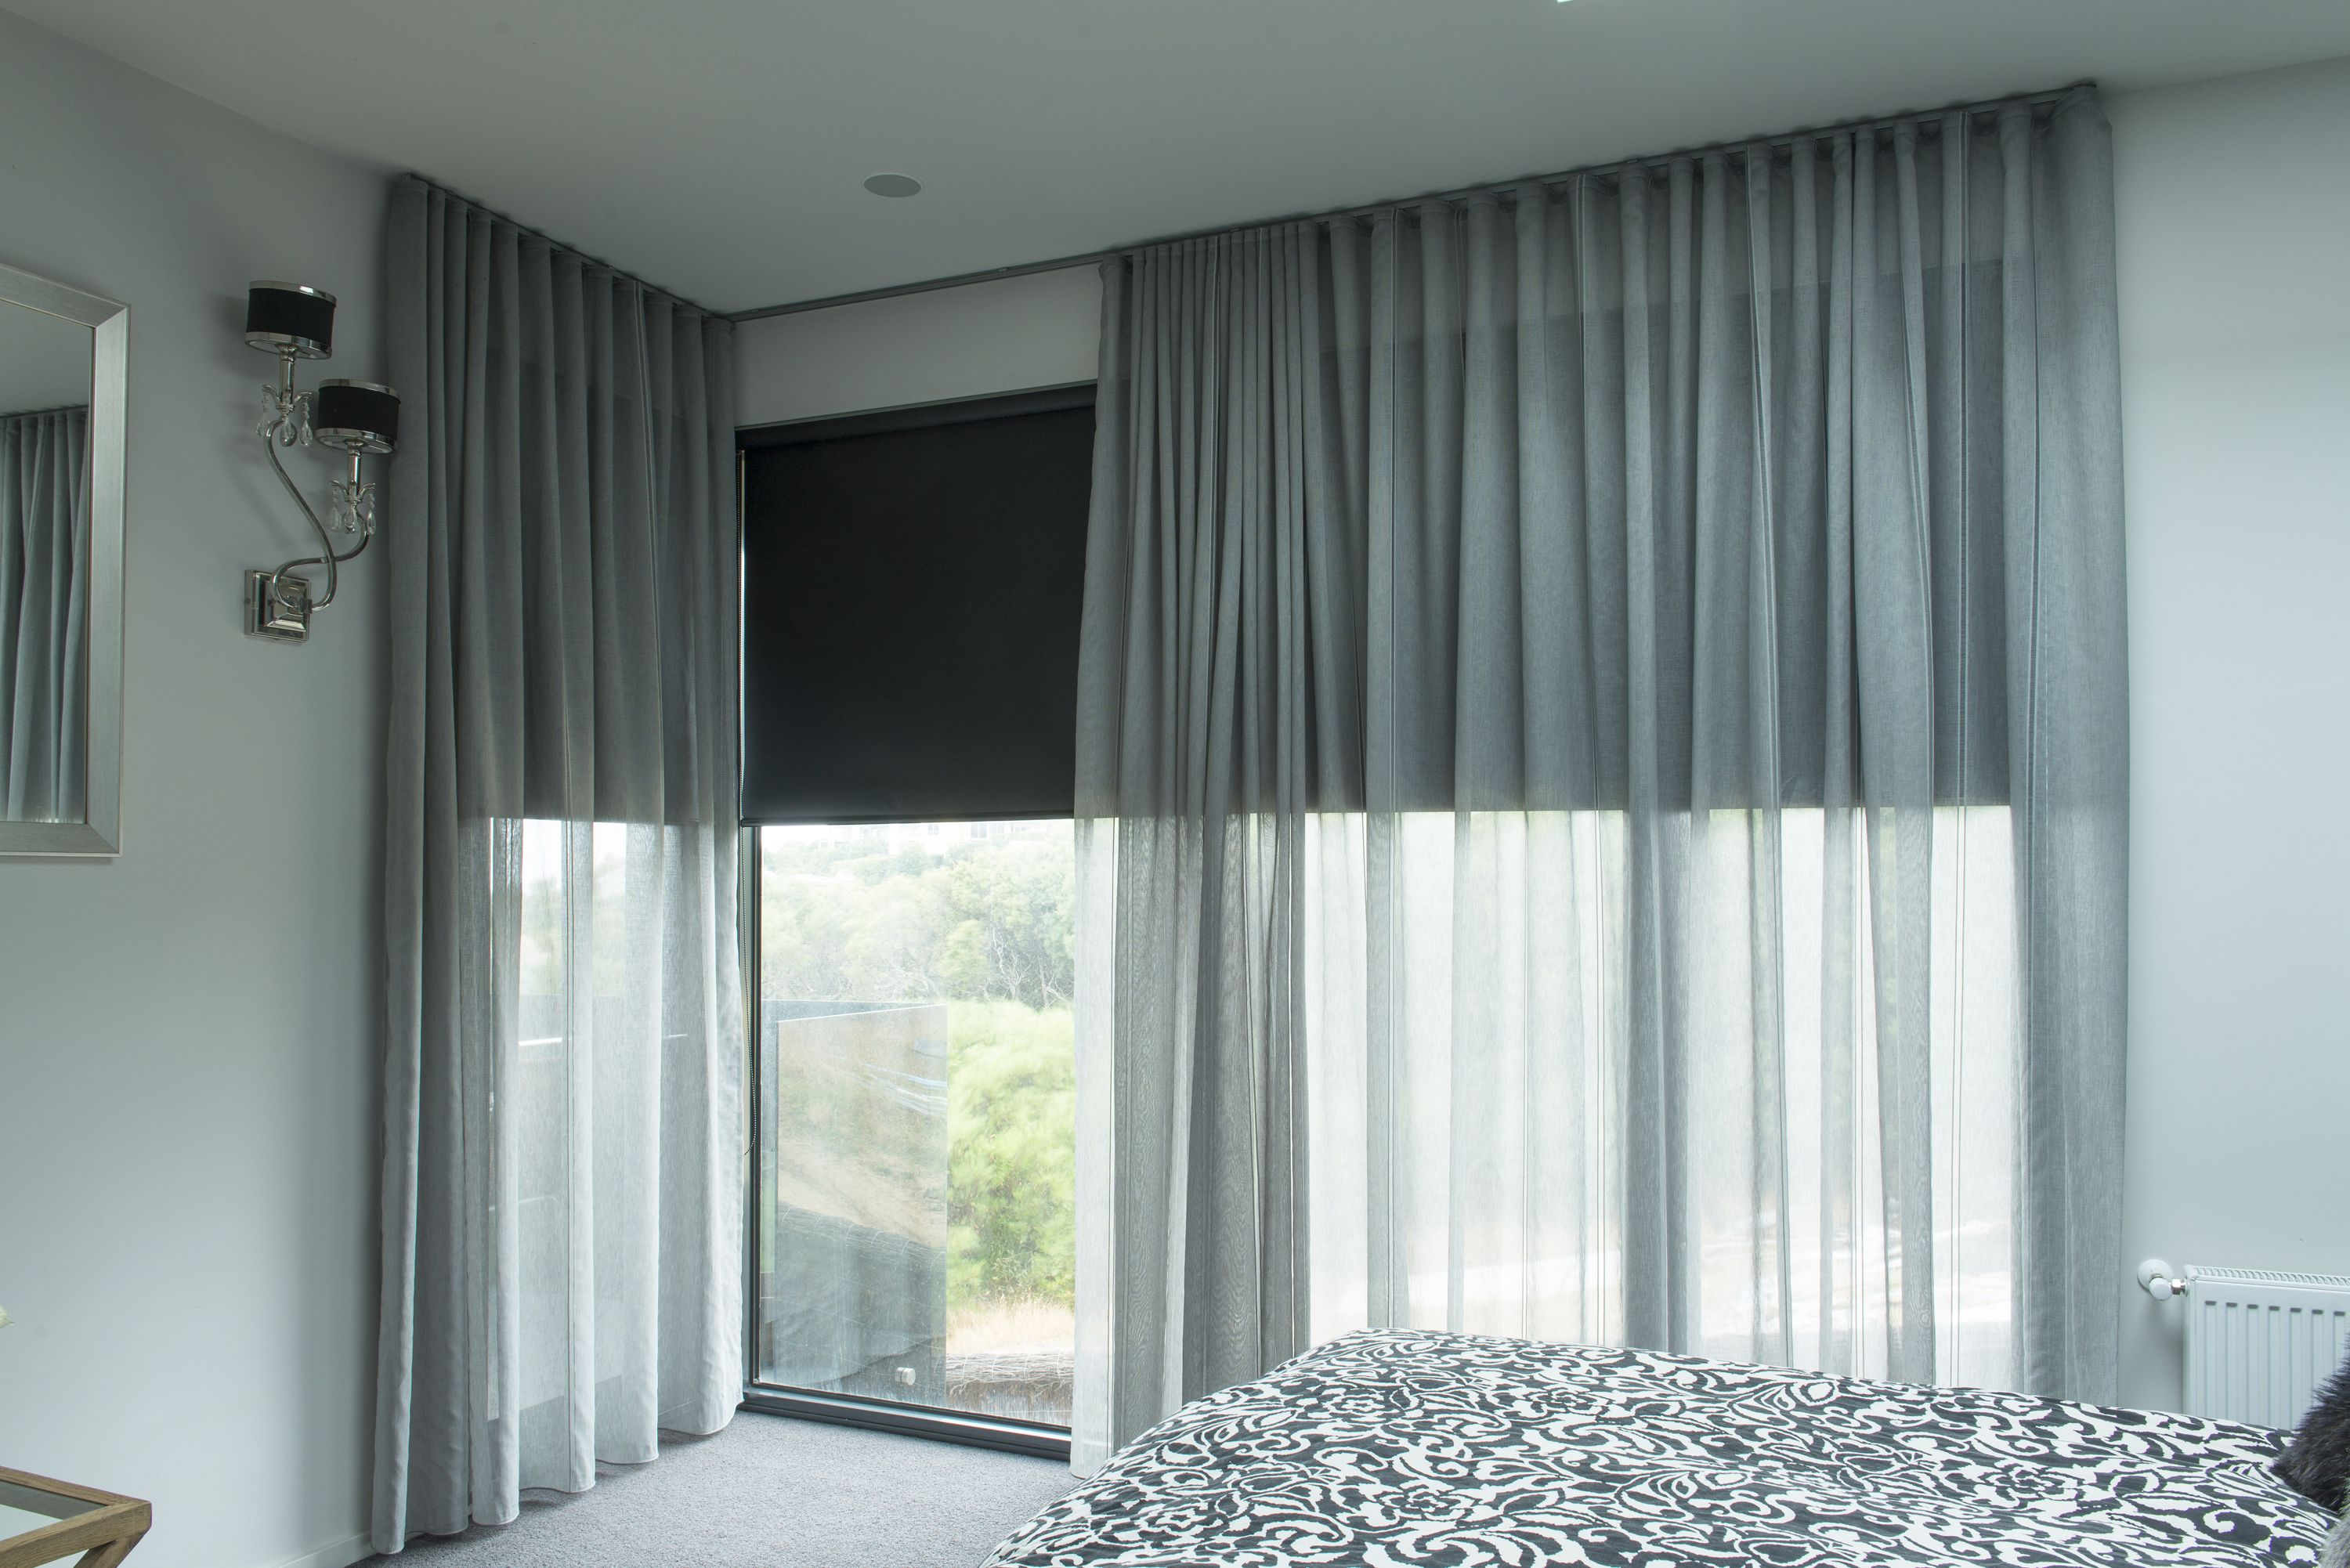 decoration blinds pictures and curtains net long marvelous together ideas